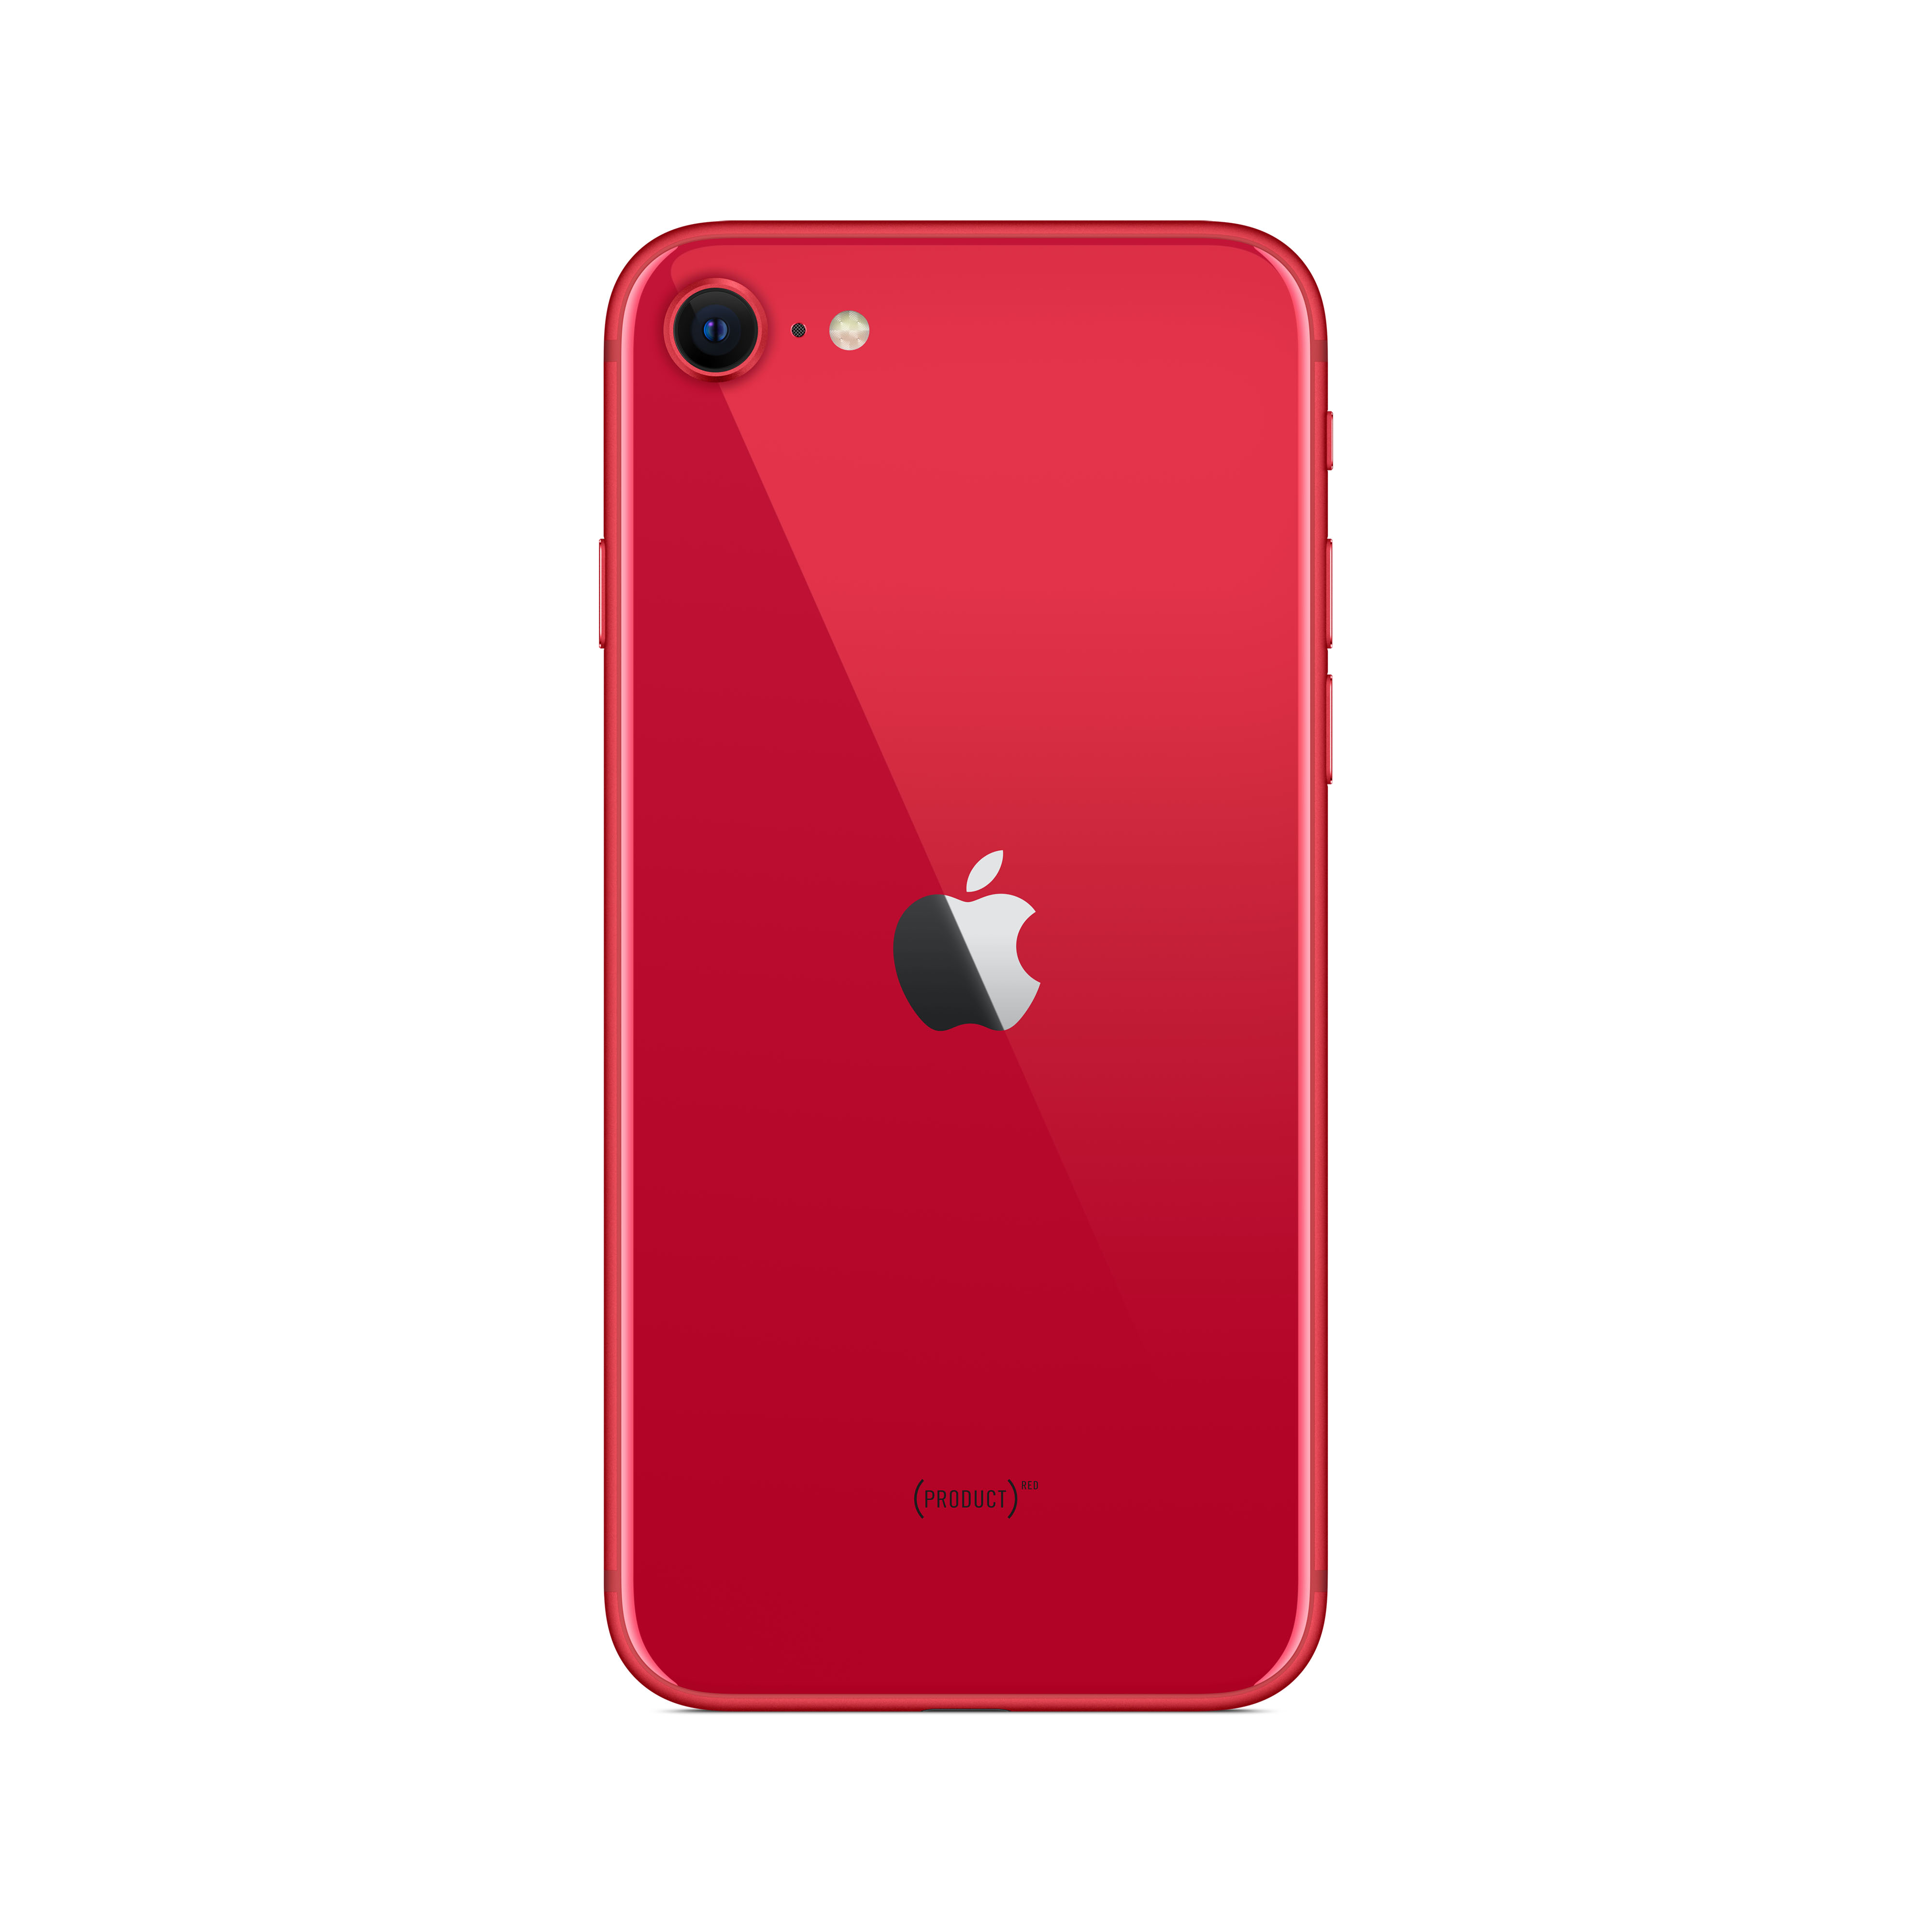 Apple iPhone SE, 64GB, (Produkt) rot